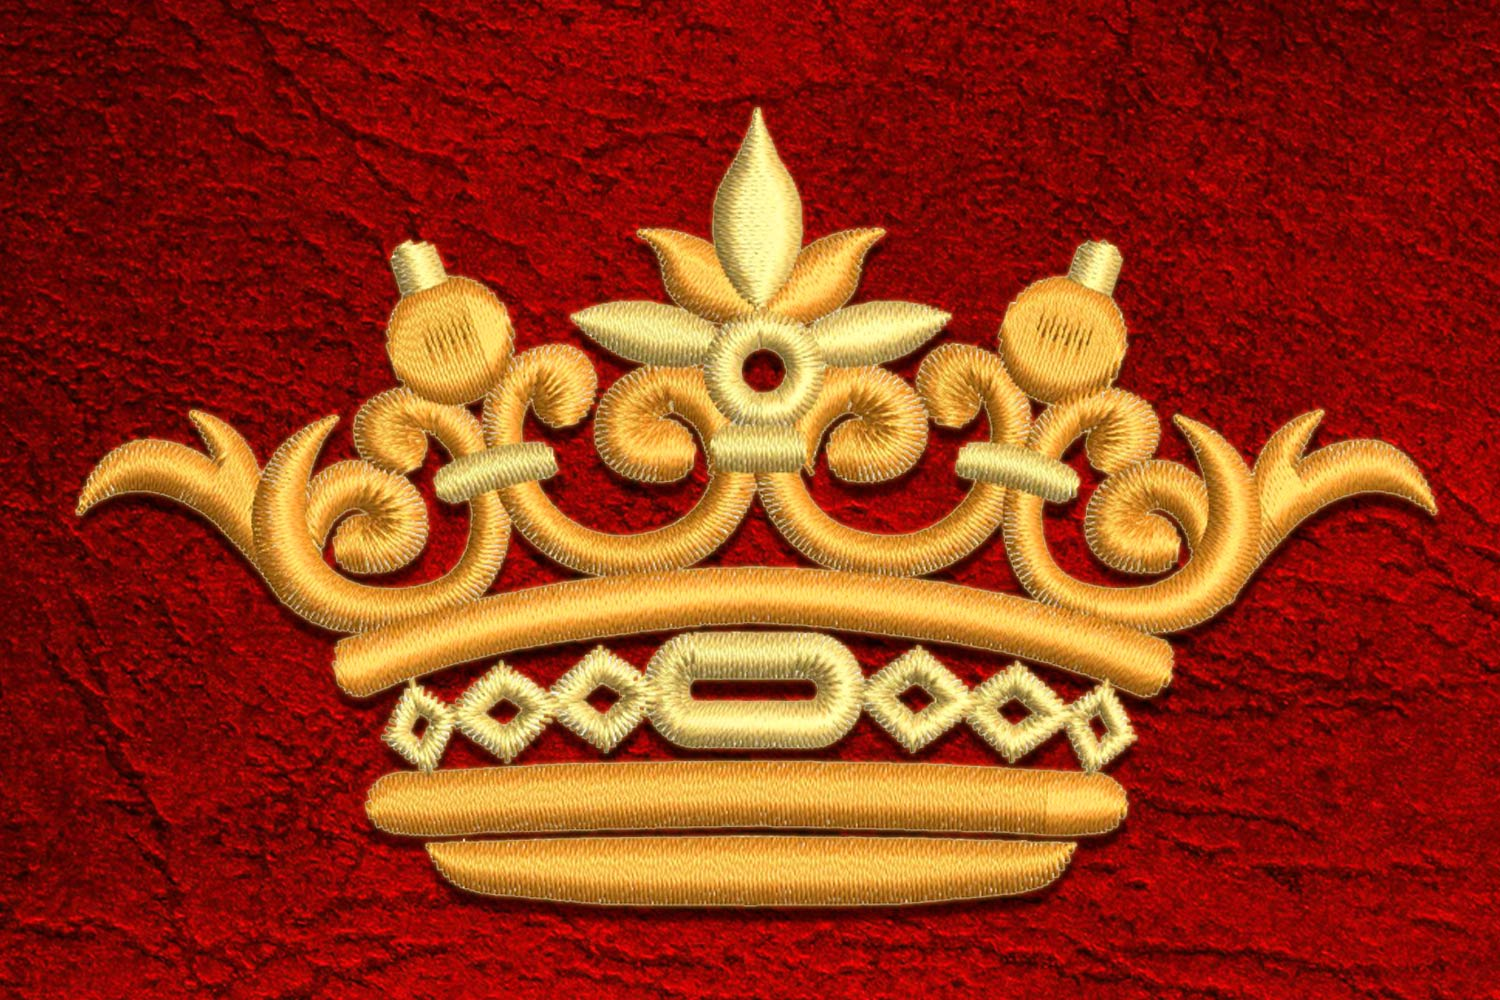 Crown4 embroidery design